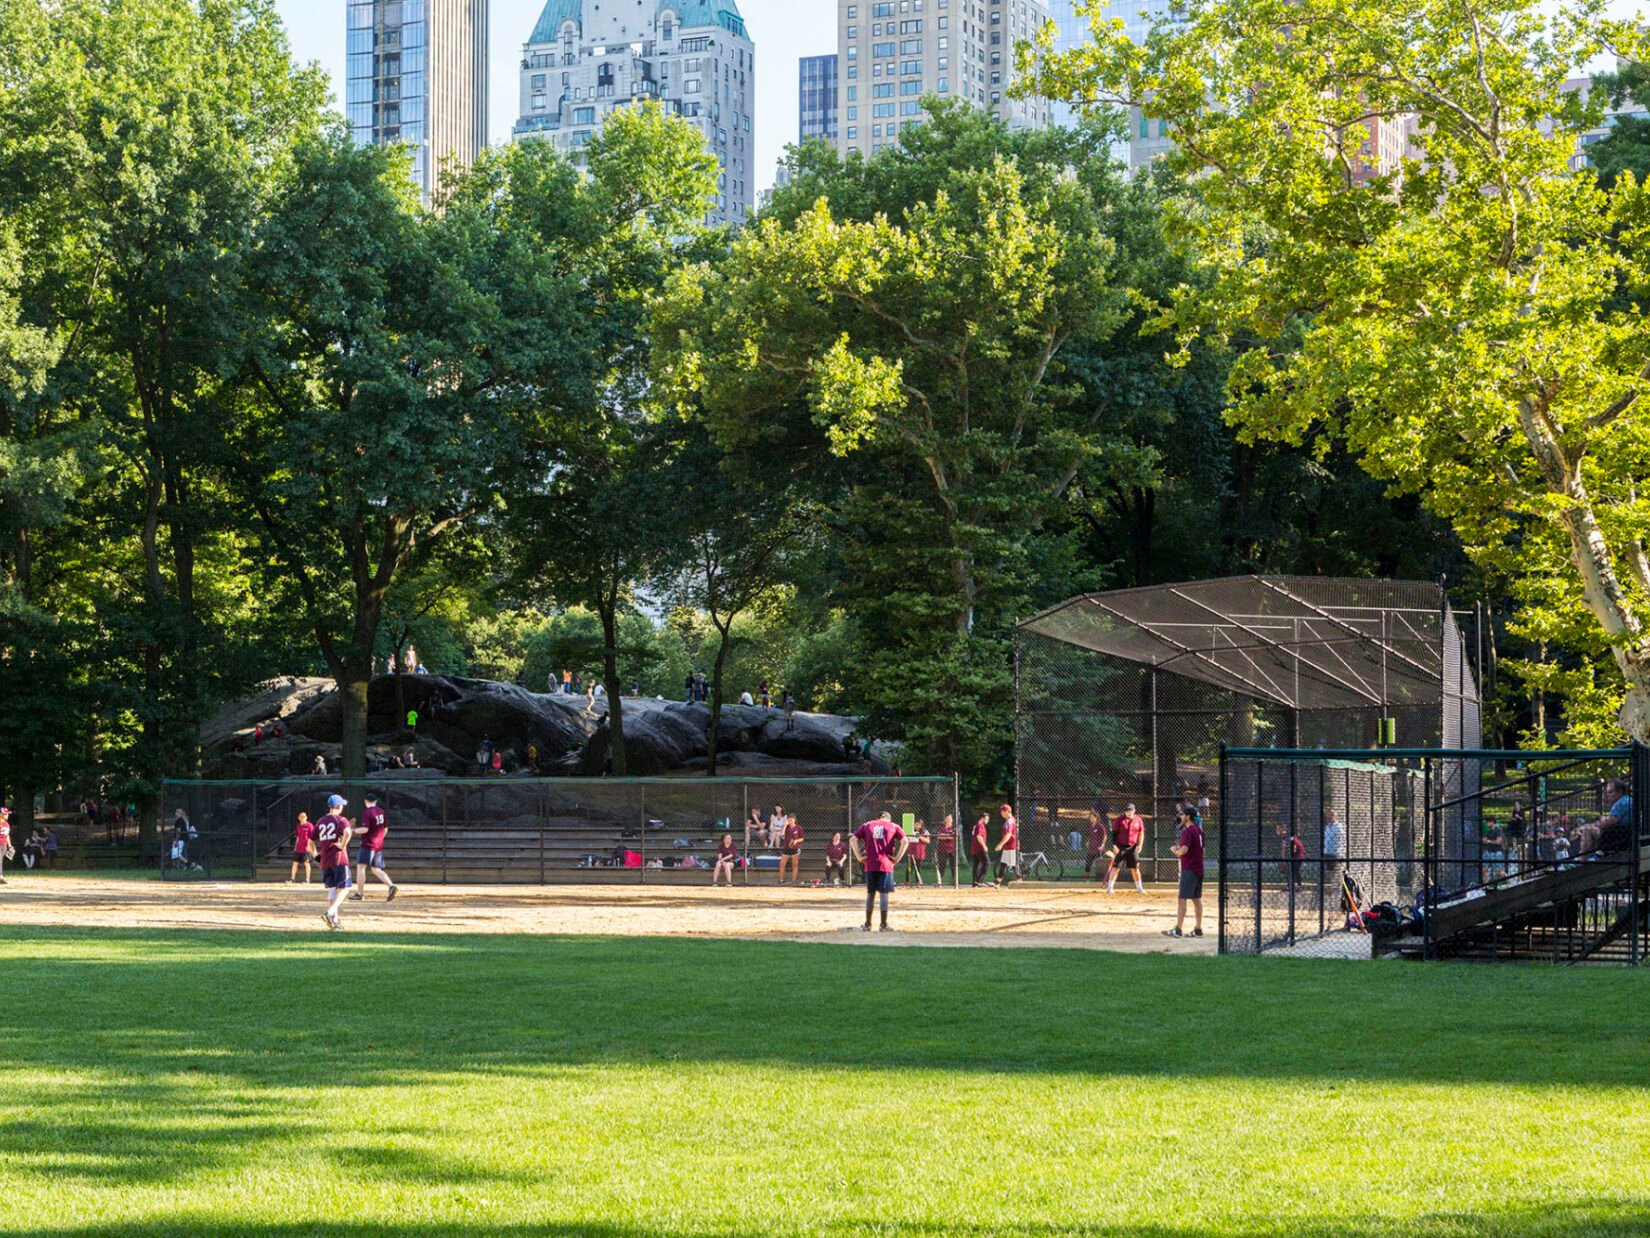 A summer softball game on Heckscher Ballfields with Umpire Rock looming in the background